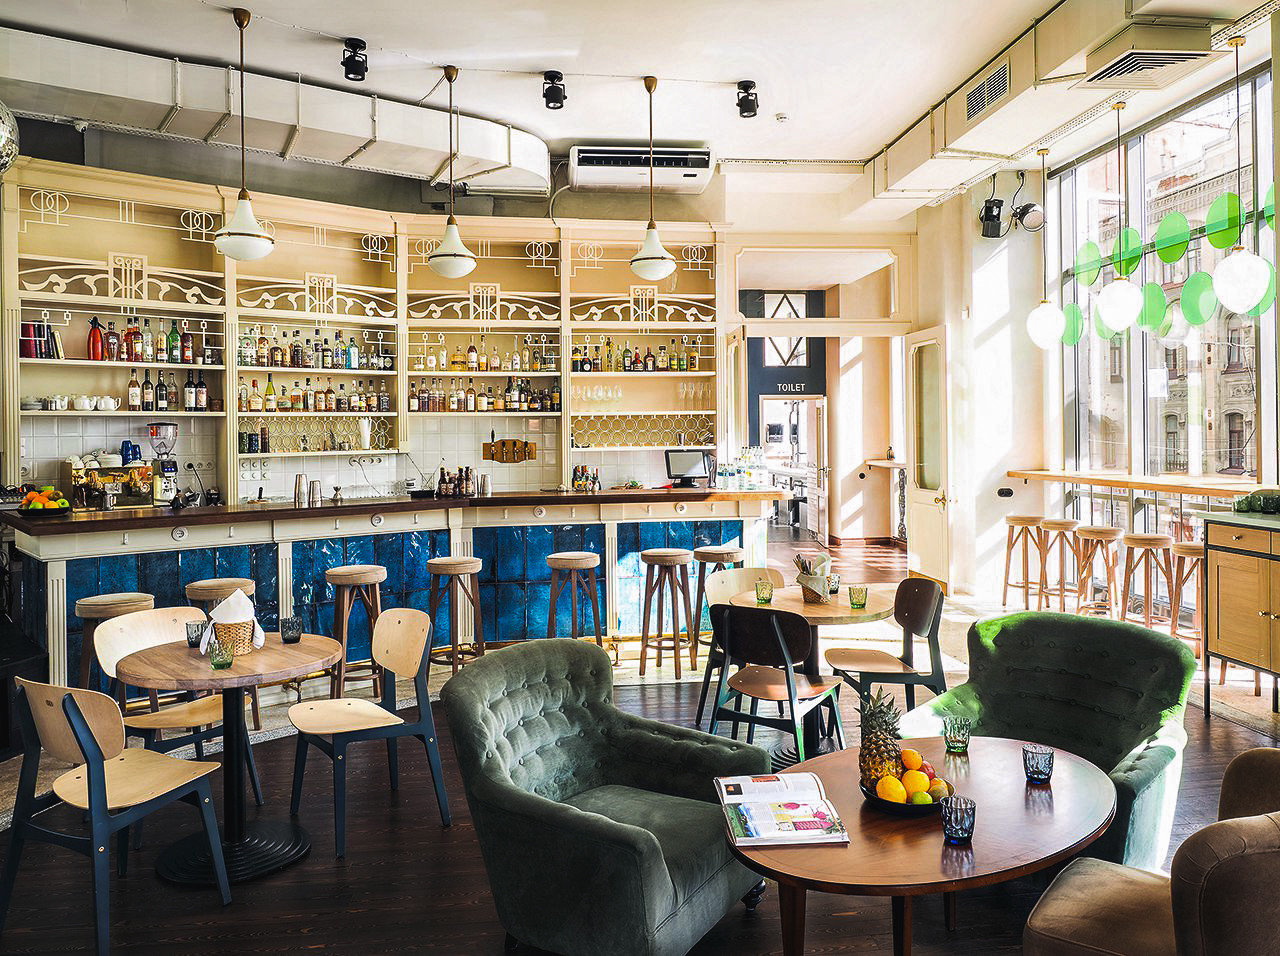 Arts + Culture Hotels Jetsetter Guides indoor table chair interior design restaurant ceiling café coffeehouse Bar area furniture